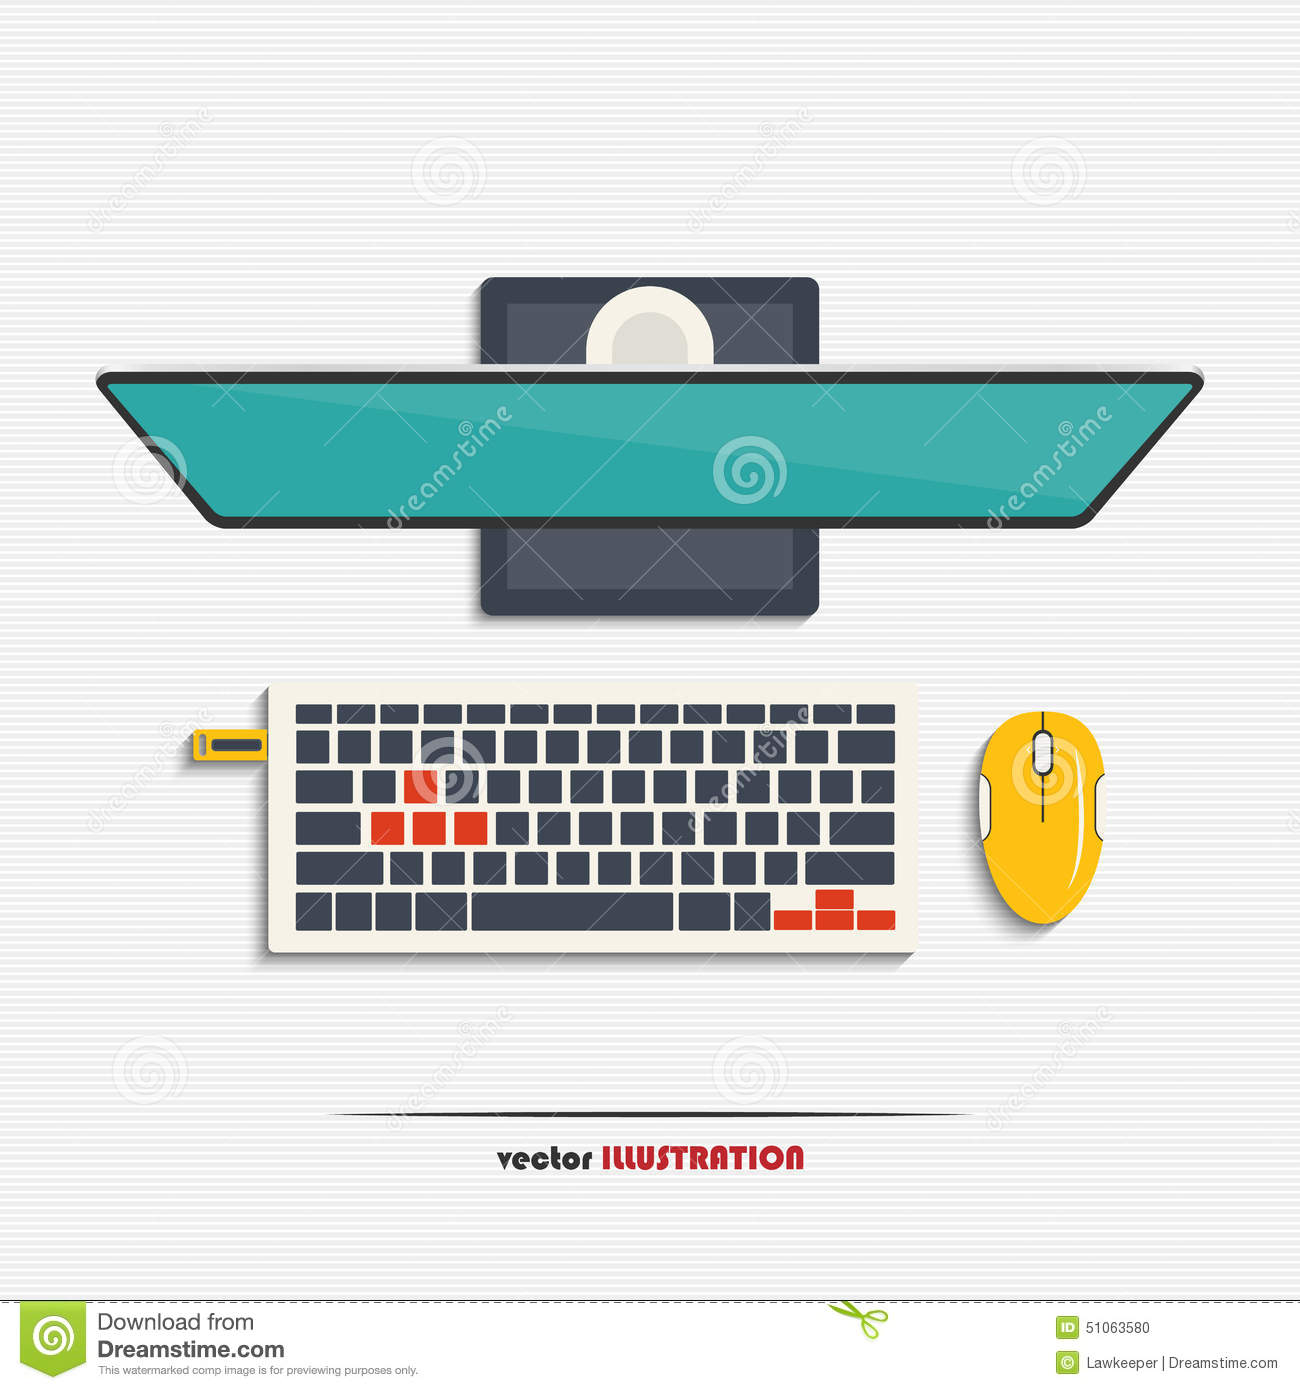 Pc monitor keyboard mouse and usb flash drive stock vector pc monitor keyboard mouse and usb flash drive biocorpaavc Images